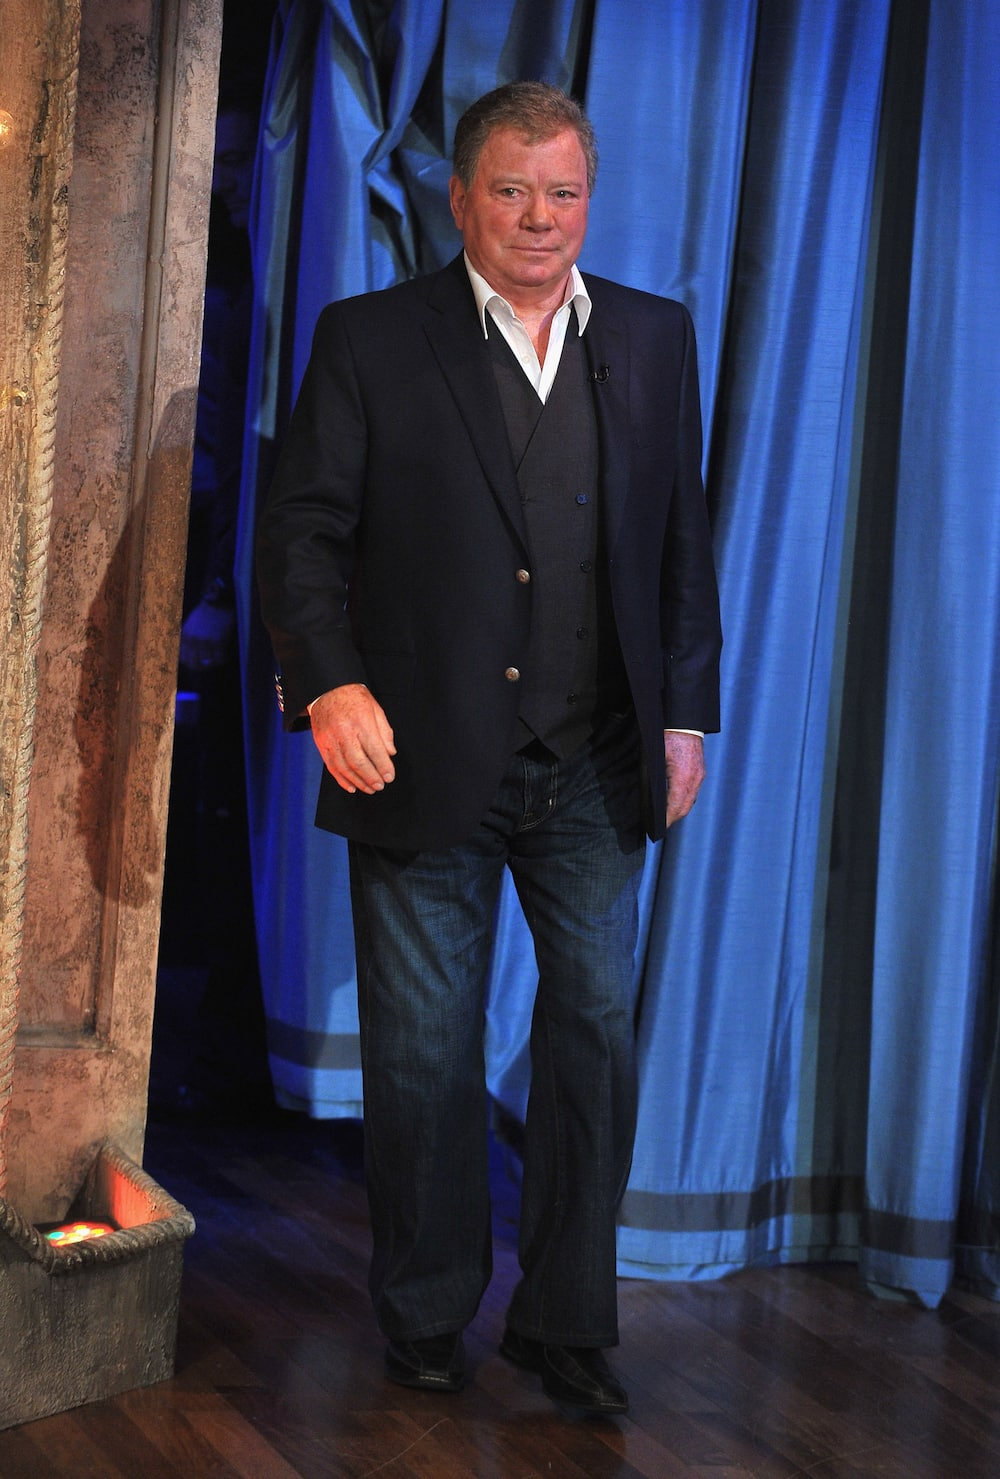 William Shatner's net worth, age, children, spouse, going to space ...